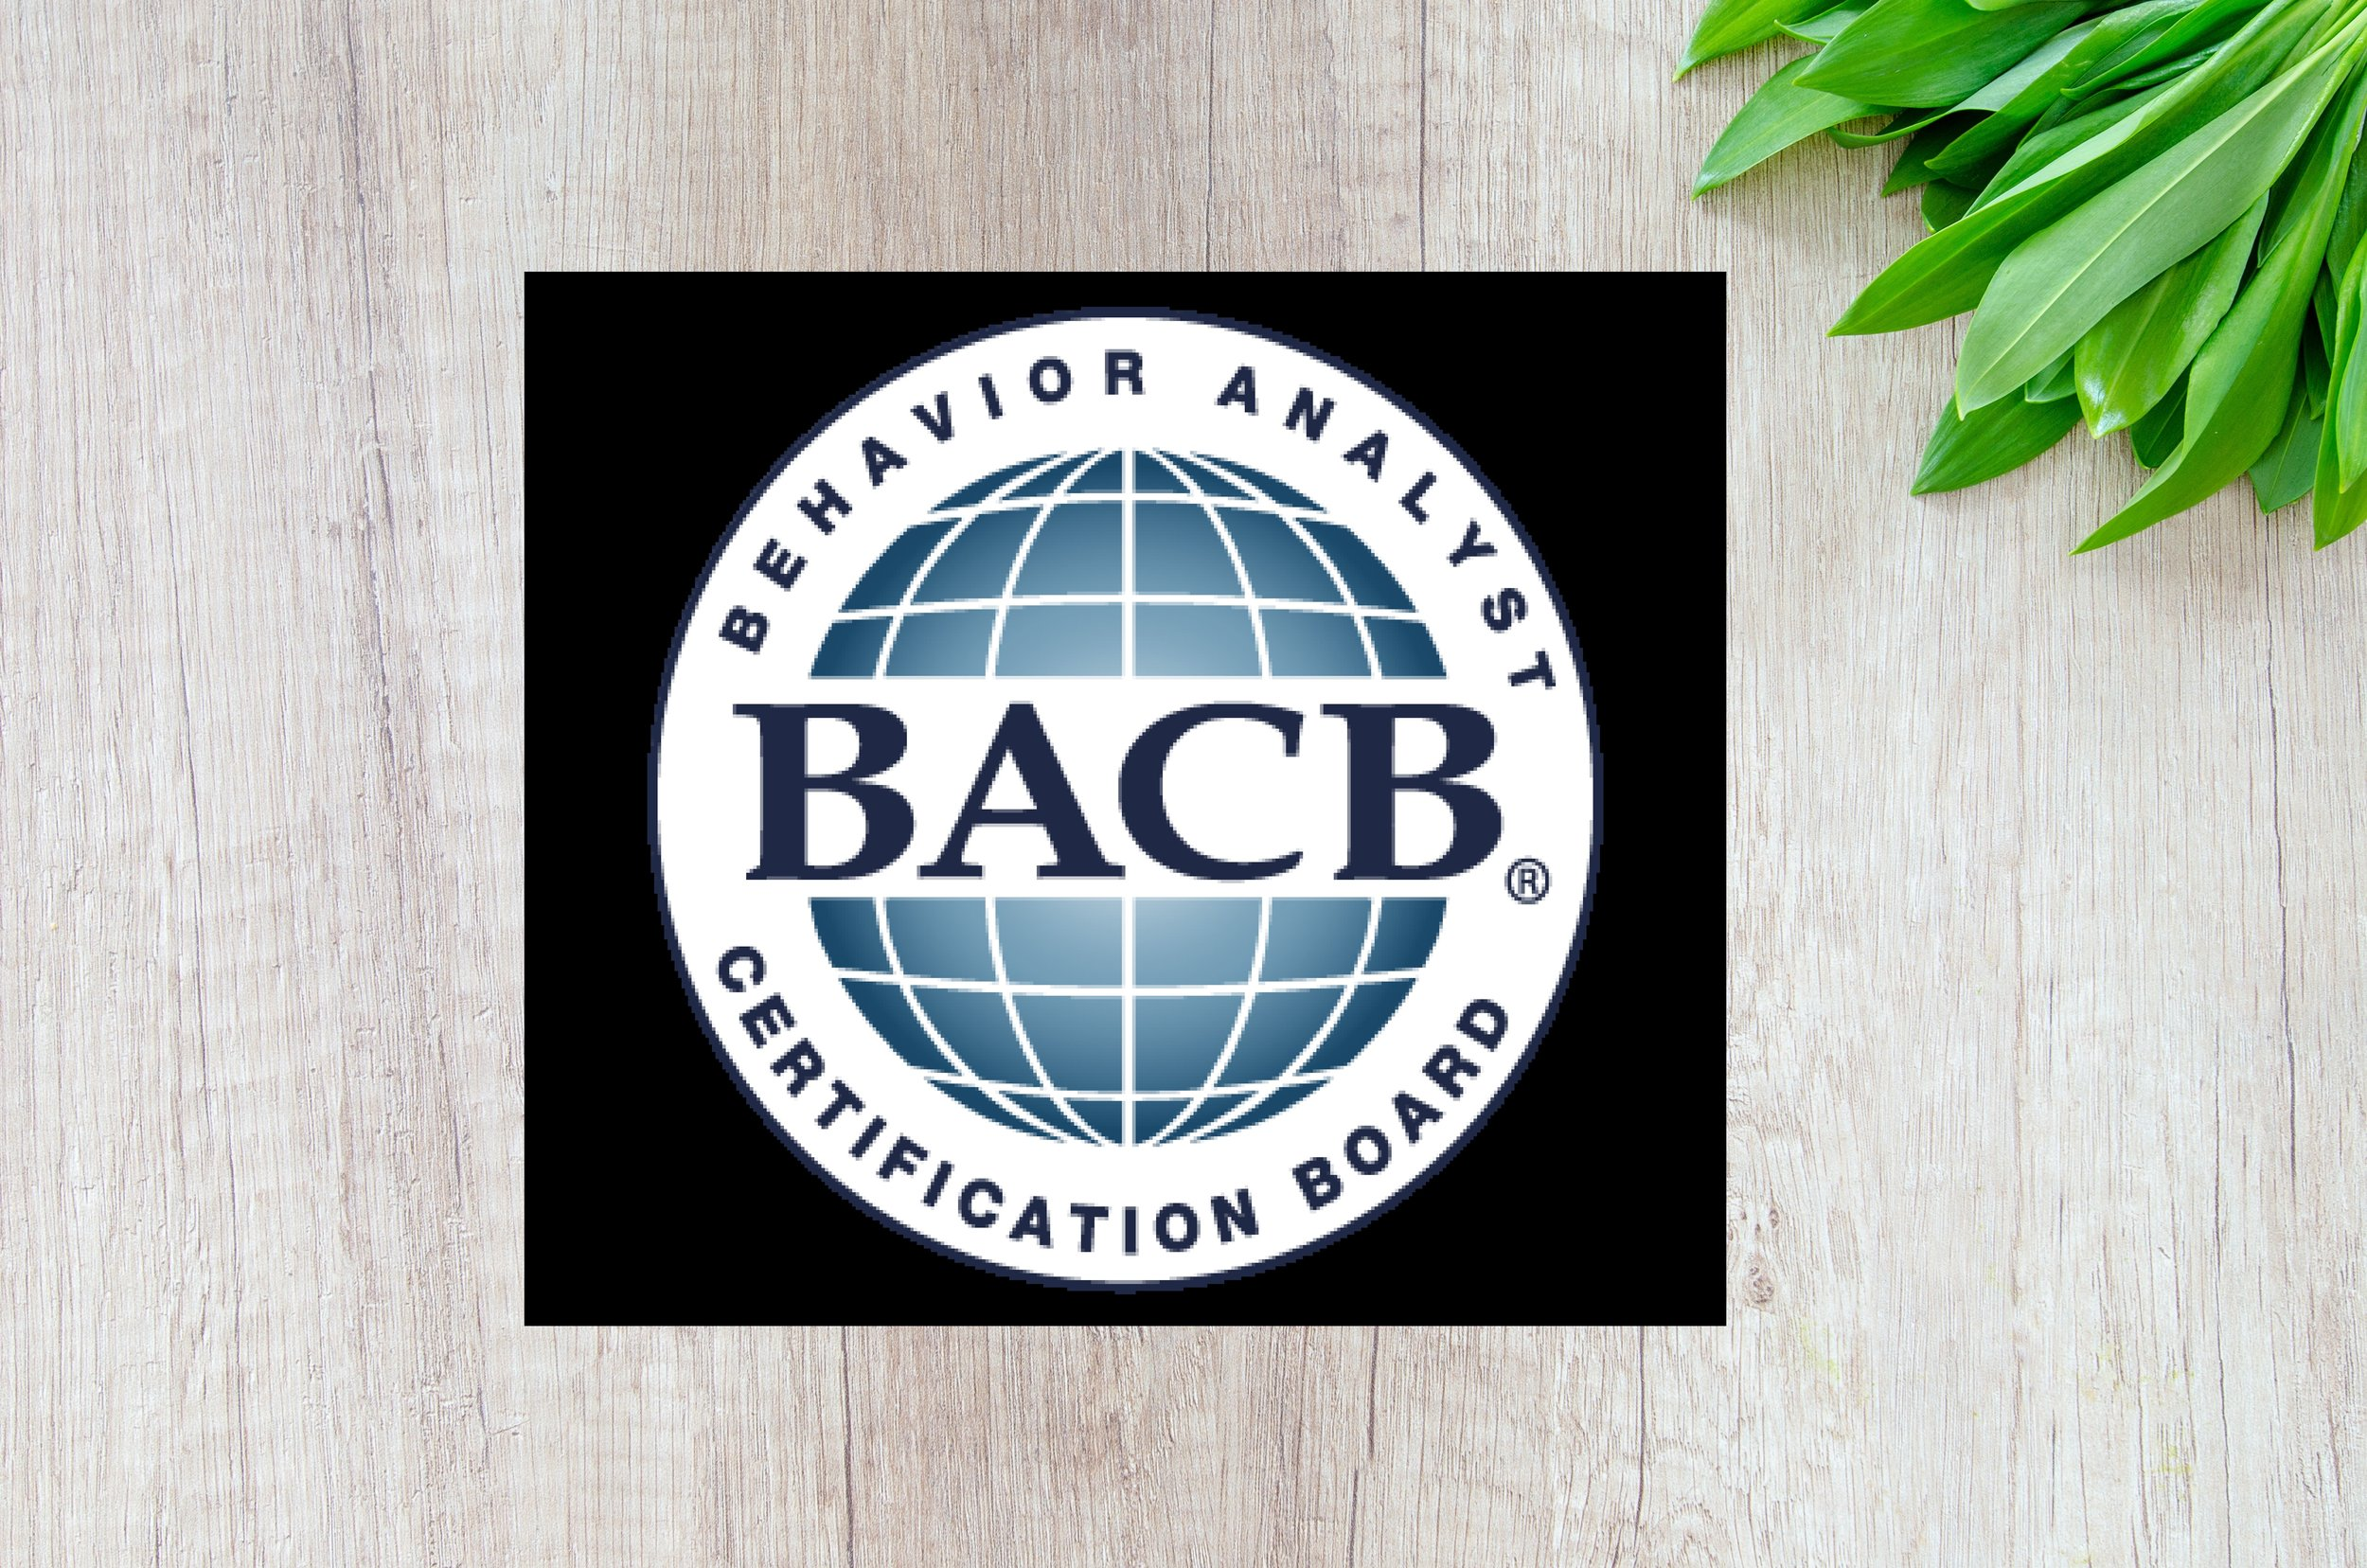 BCBA Supervision - We provide supervision according to the BACB Experience Standards for potential BCBAs or RBTs.